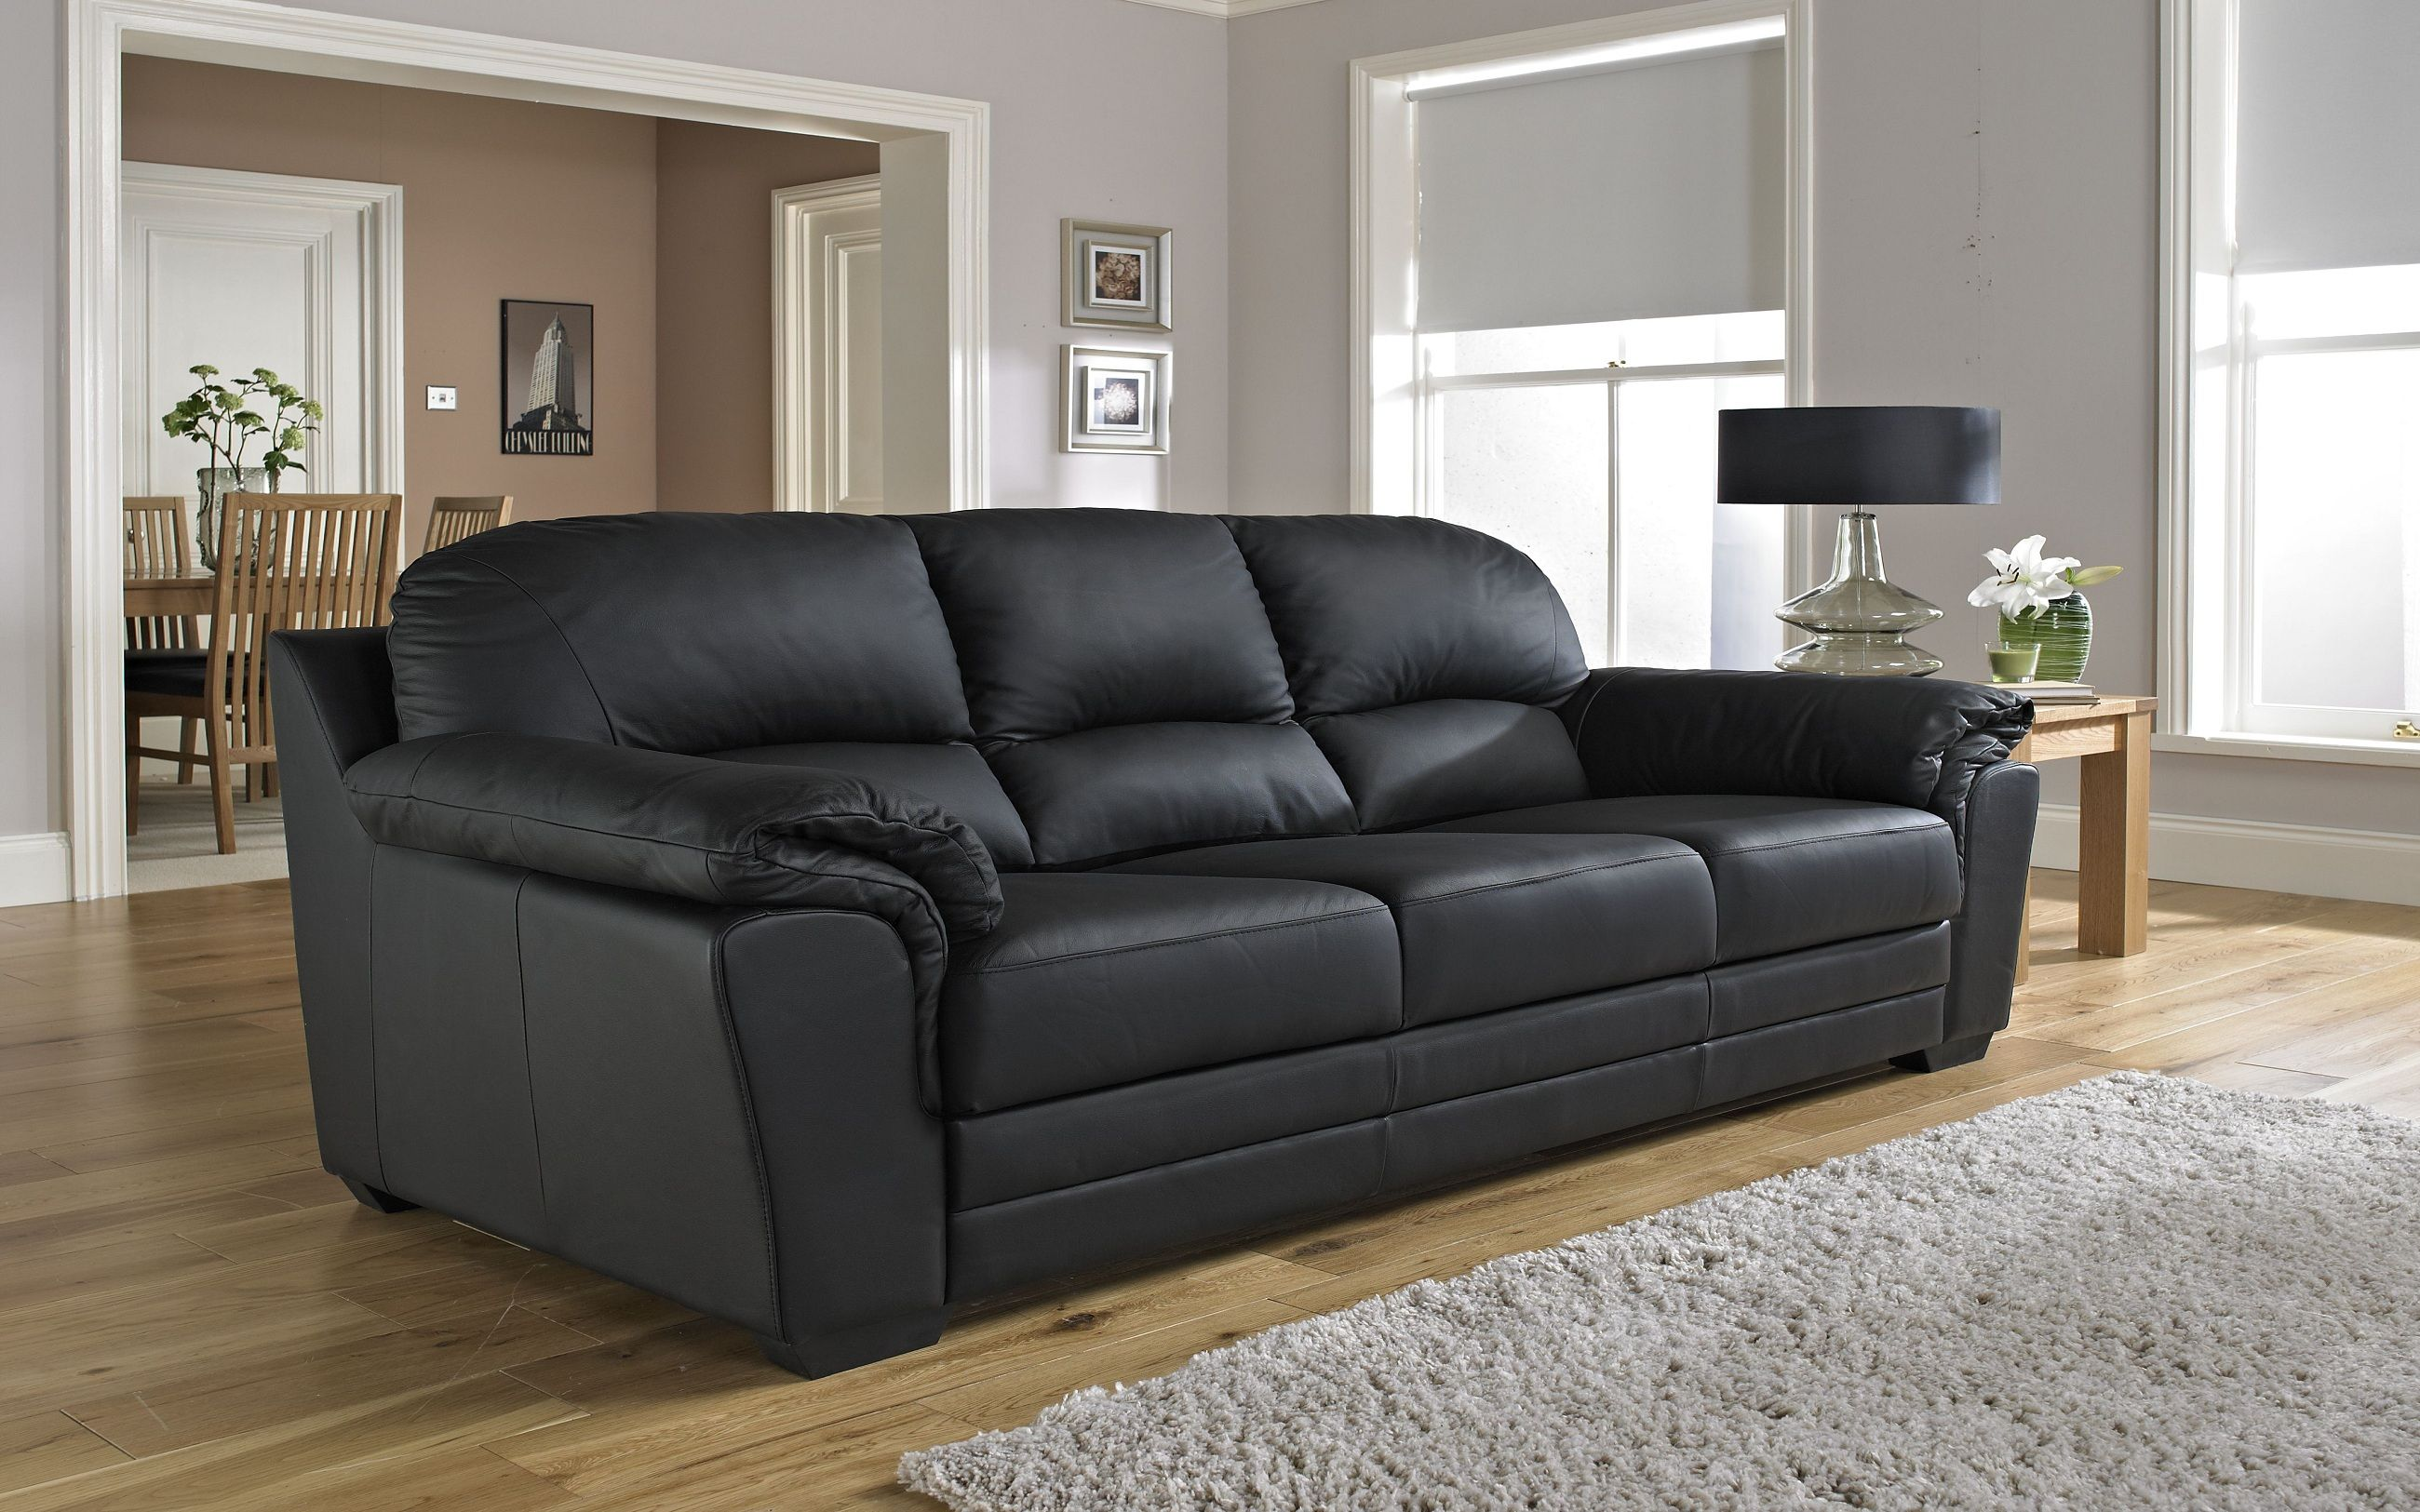 black sofa with wooden table - Black Sofa